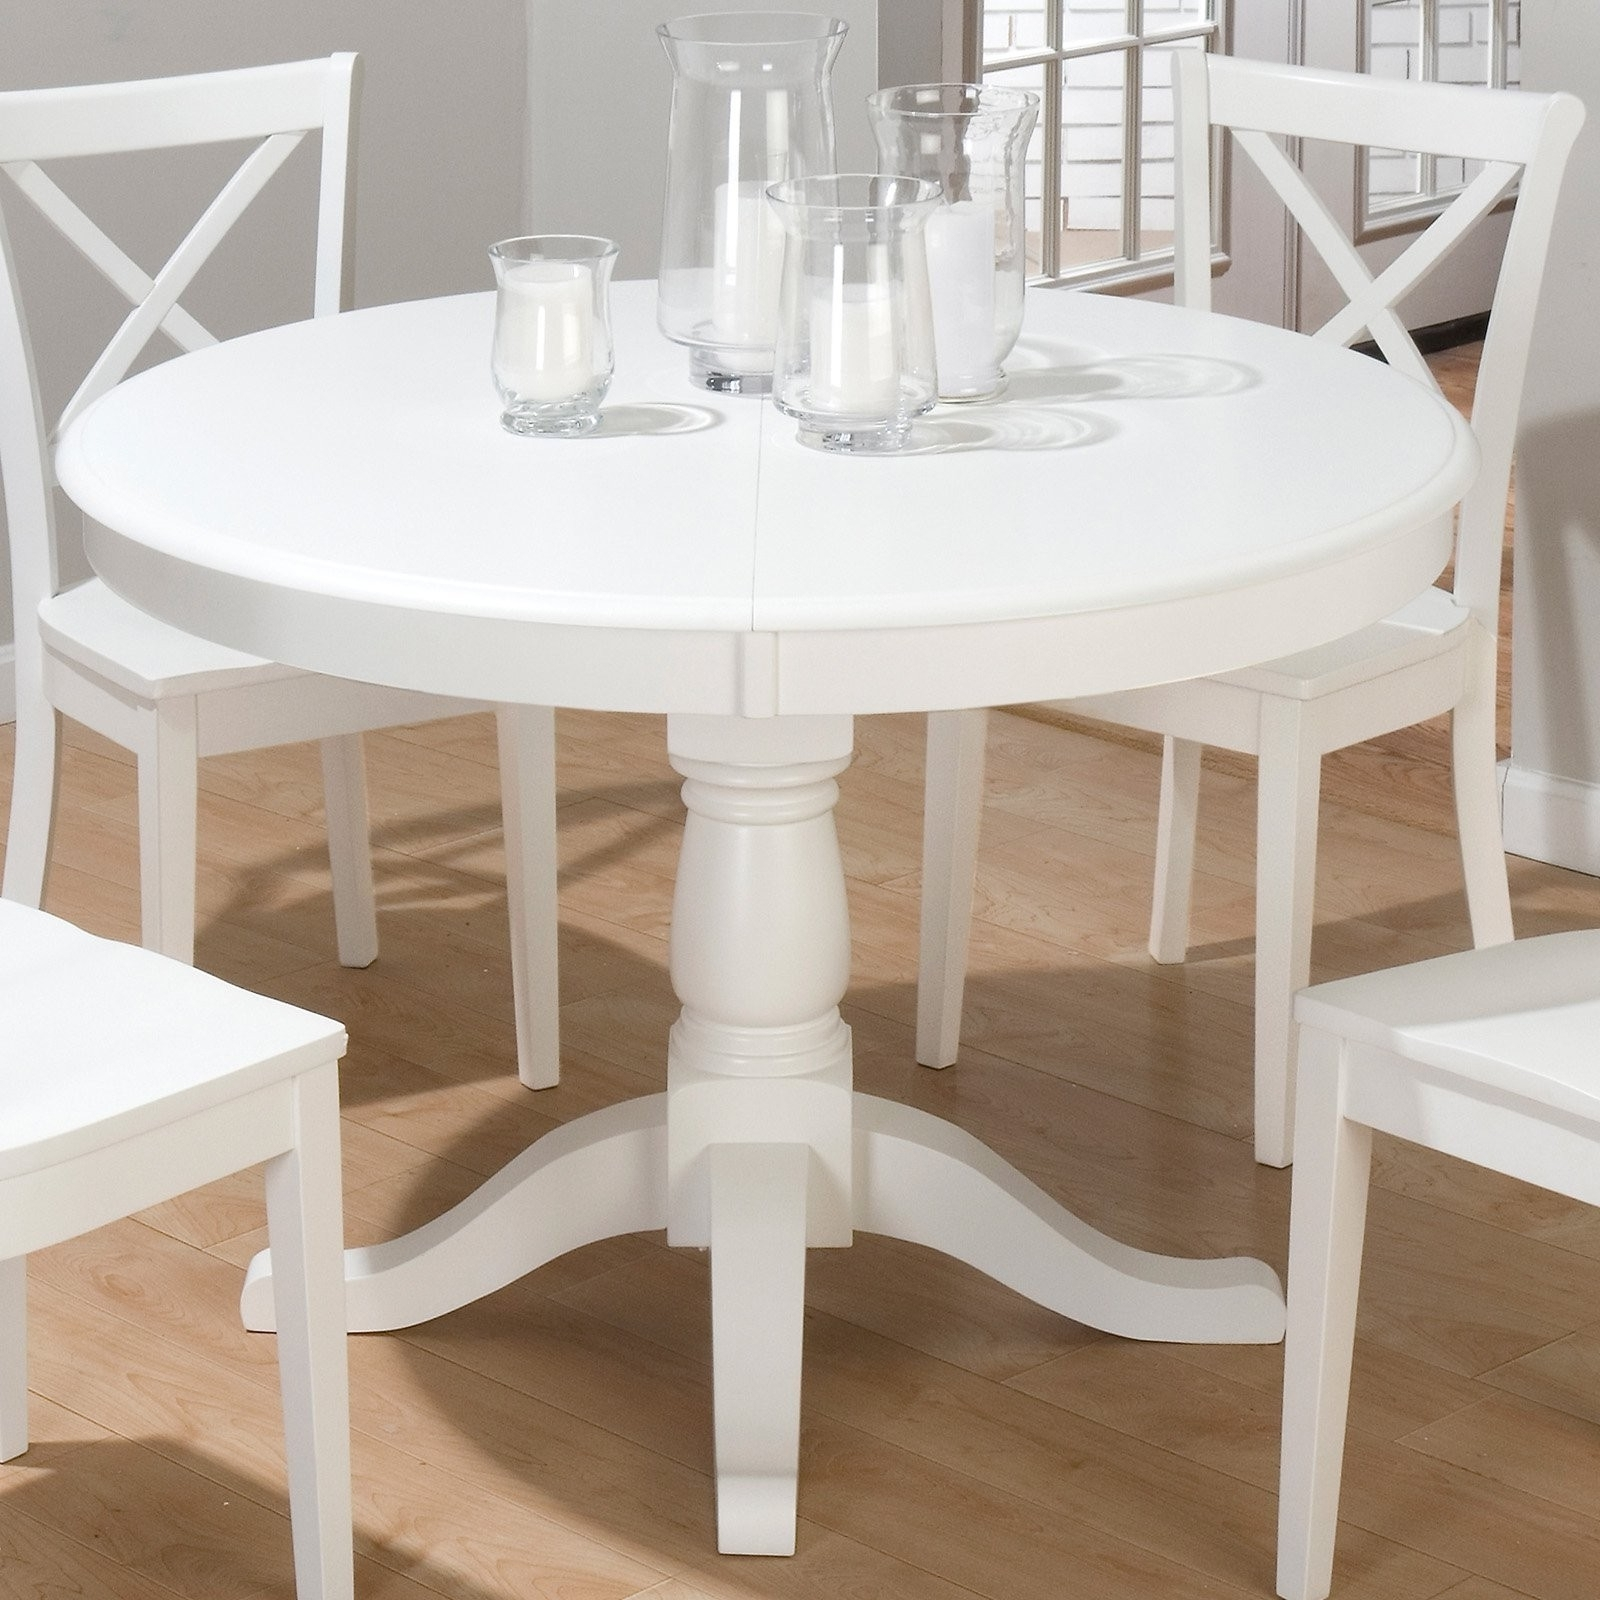 White Round Extendable Dining Tables Regarding Newest Extendable Dining Tables For Small Spaces Inspirational White Round (View 11 of 25)